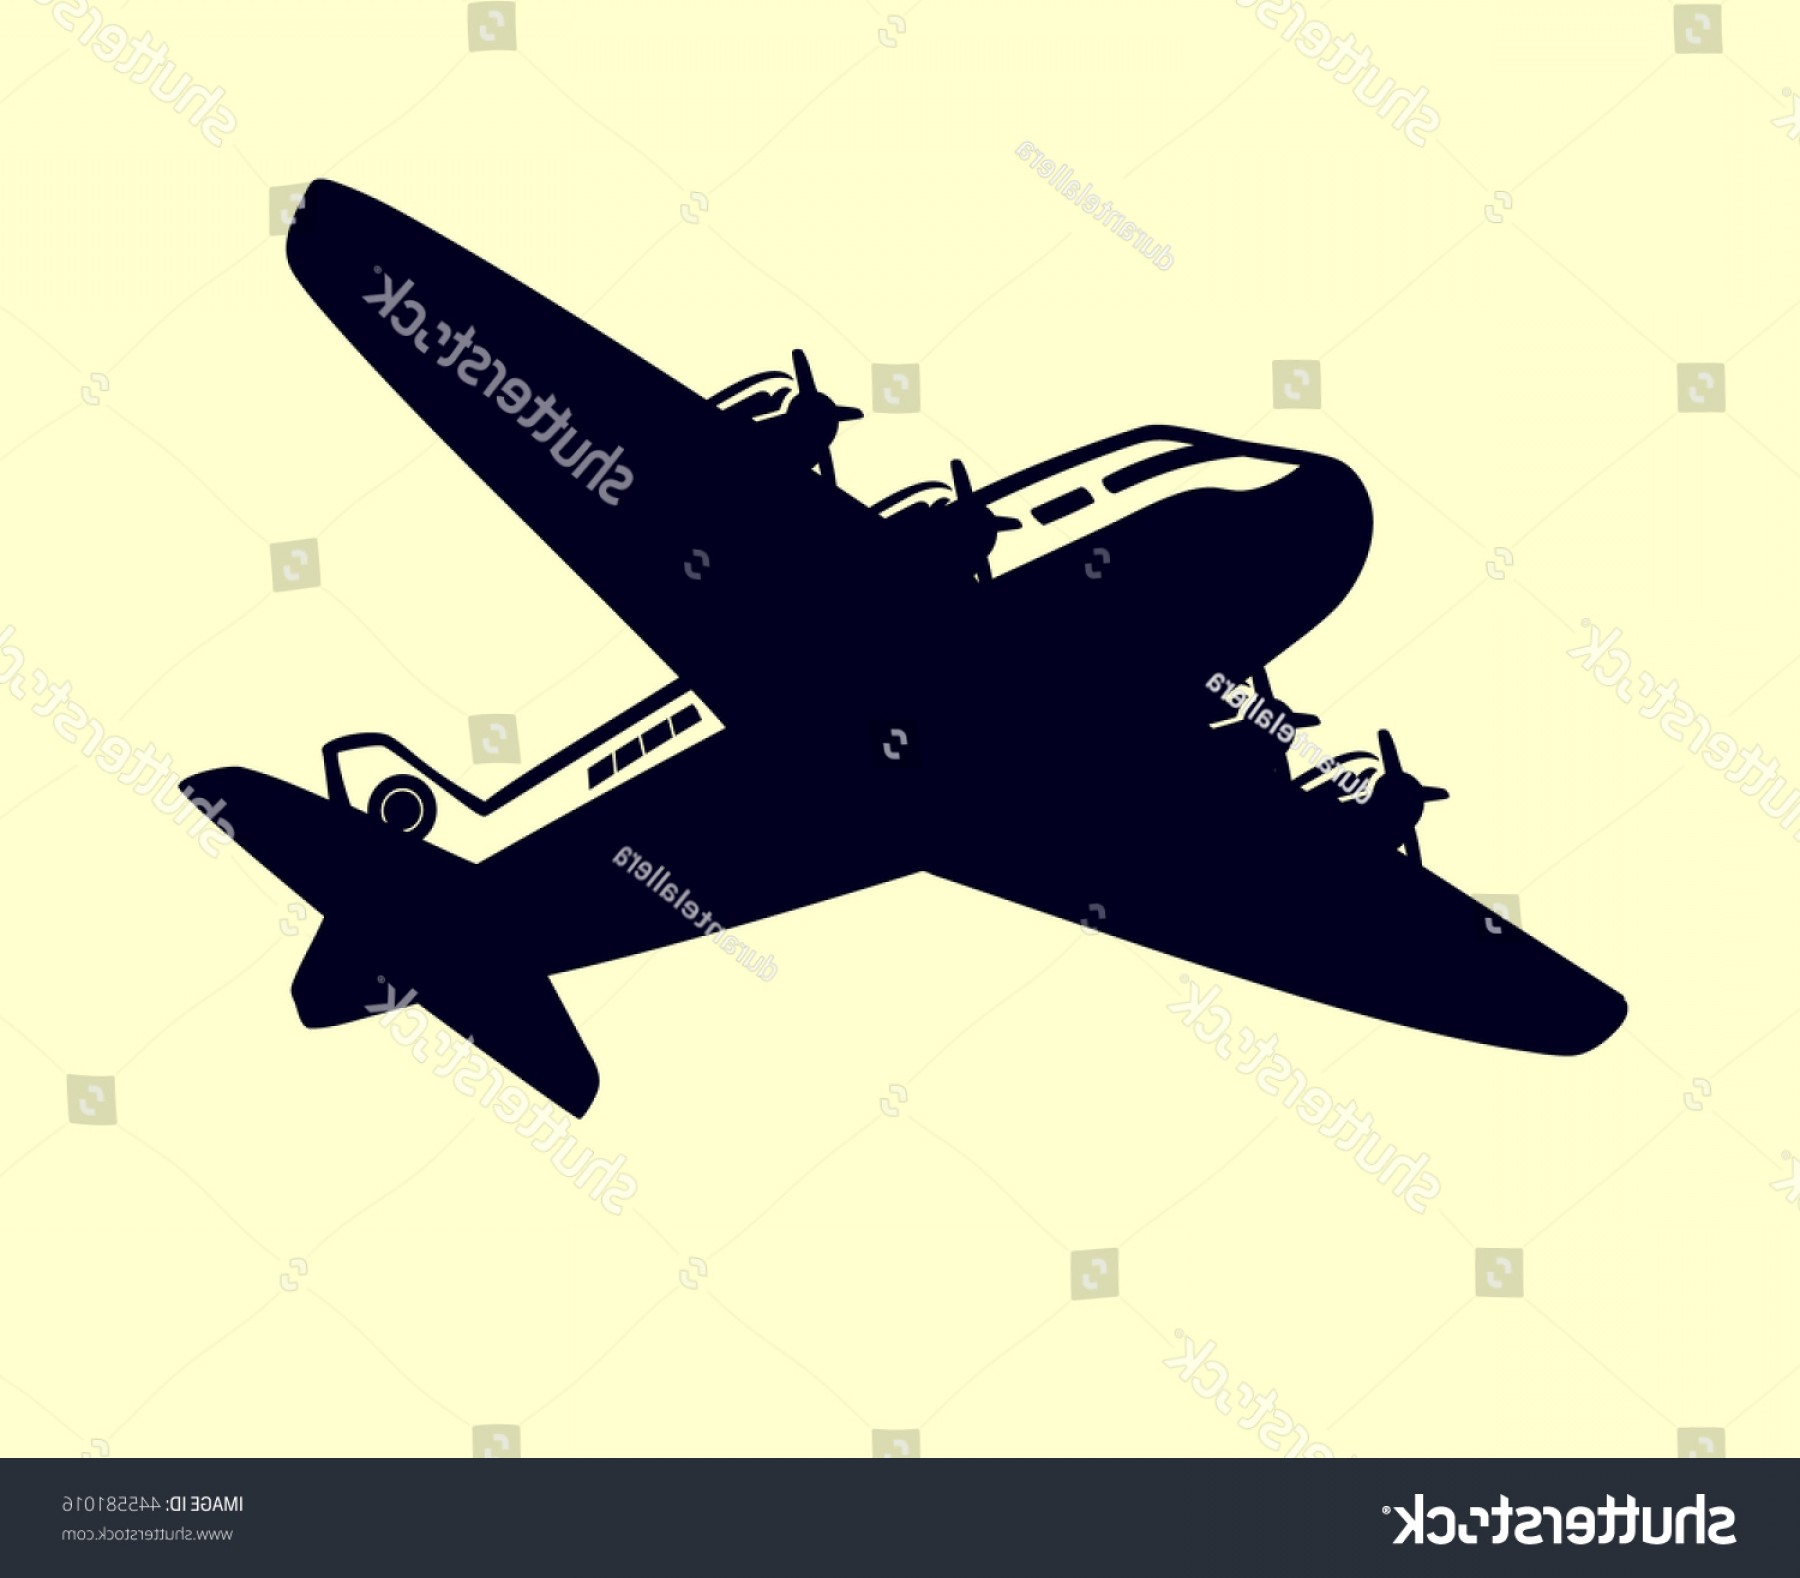 Old School Airplane Fighter Silhouette Vector: Vintage Airplane Vector Clip Art Simple